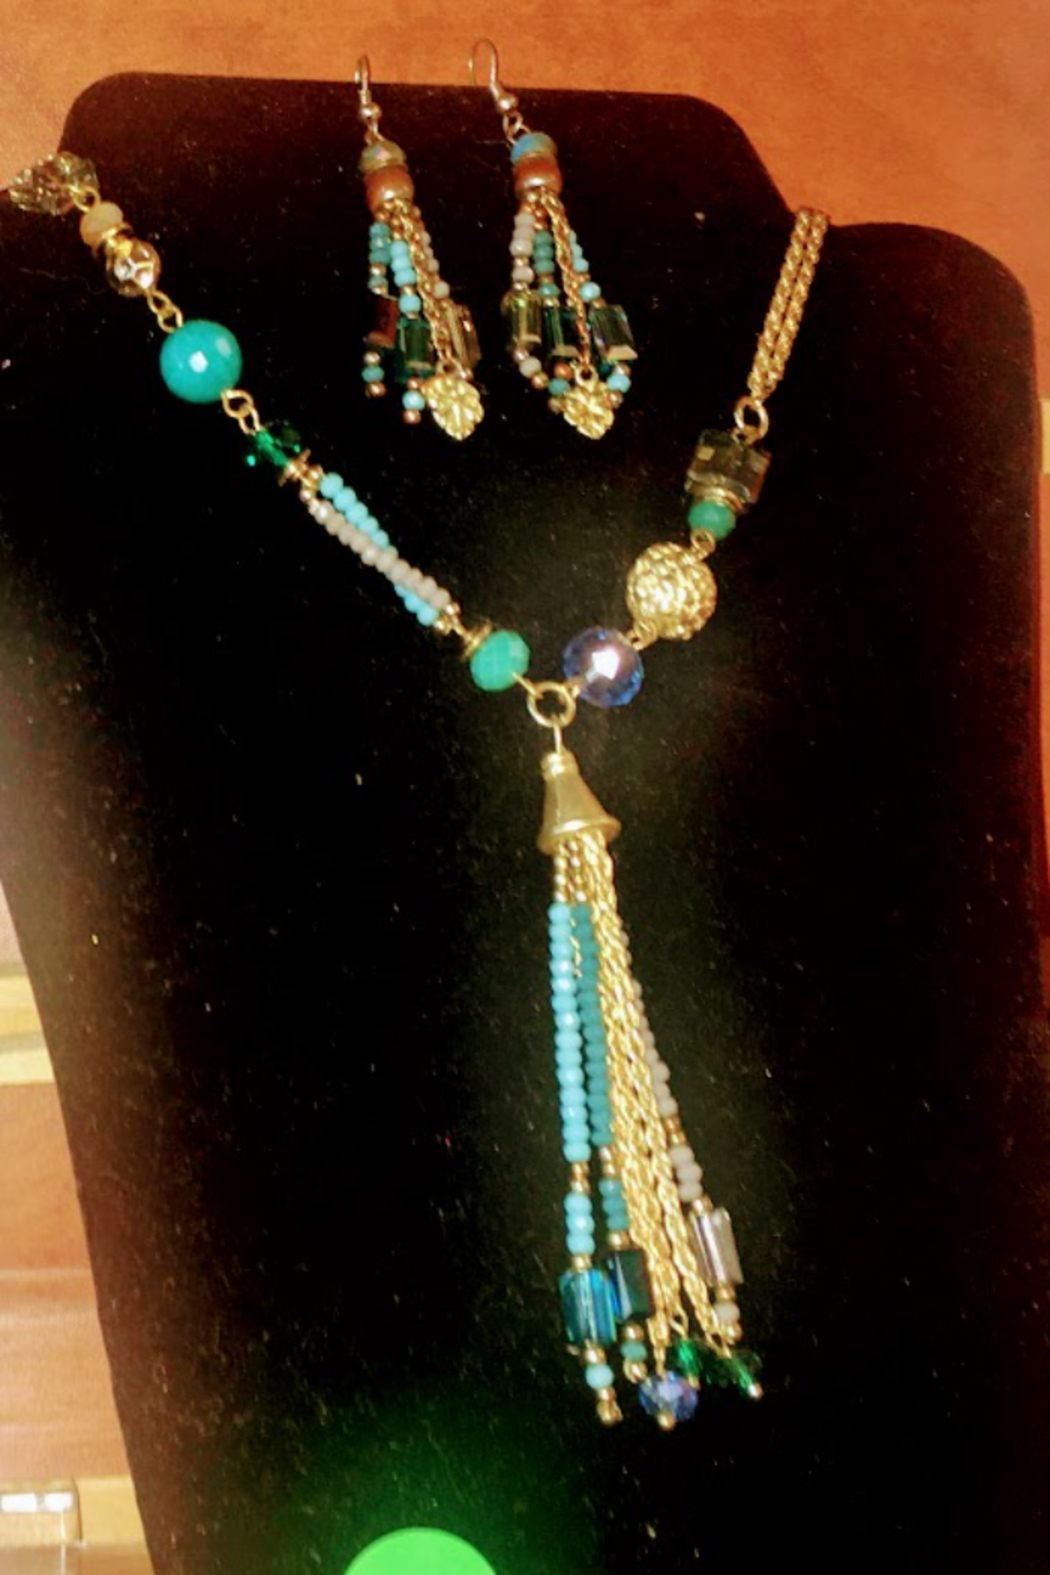 No Name Turquoise Beaded Strand Necklace and earring Set From Cape May New Jersey - Main Image